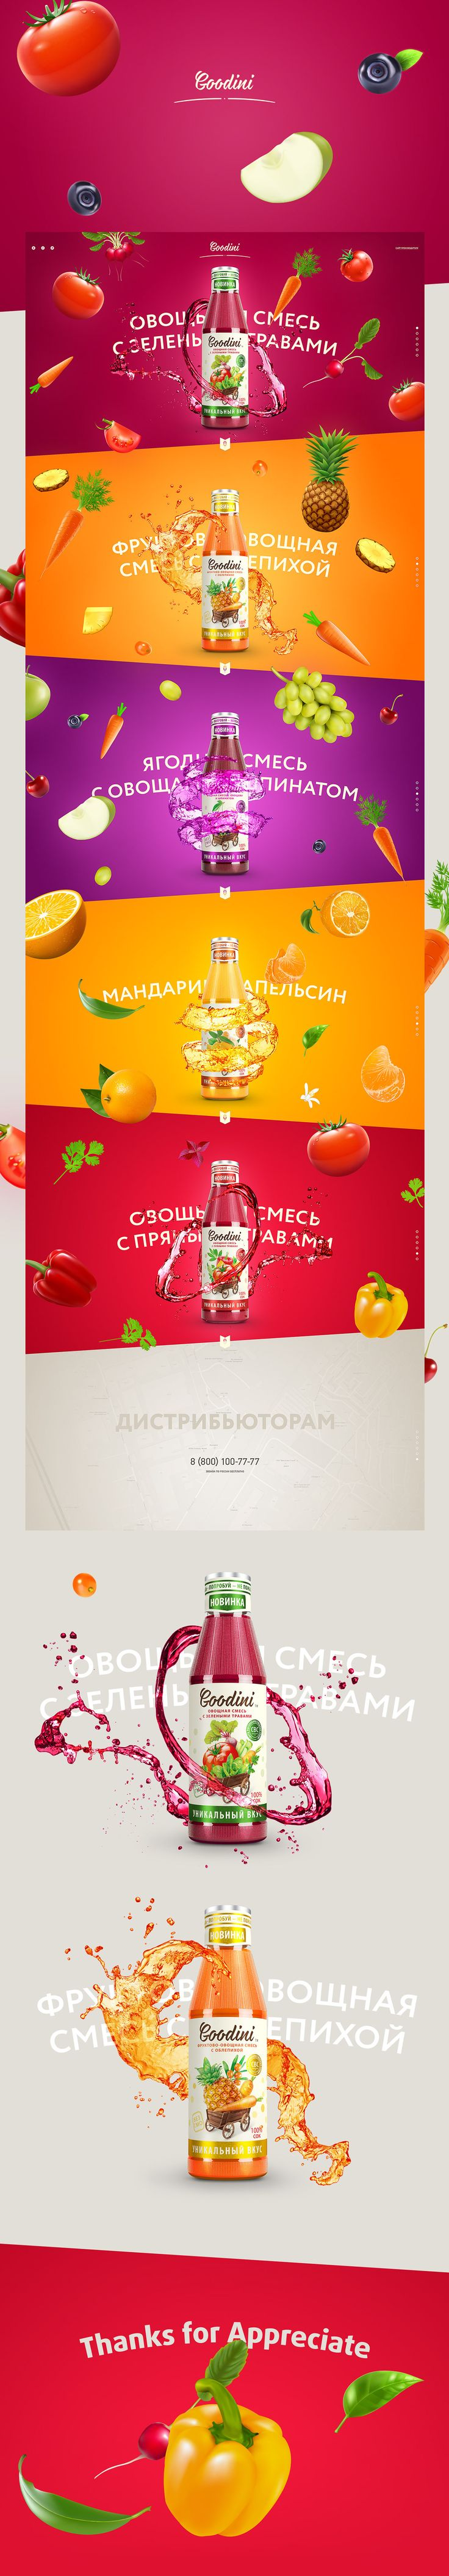 Goodini juice on Behance